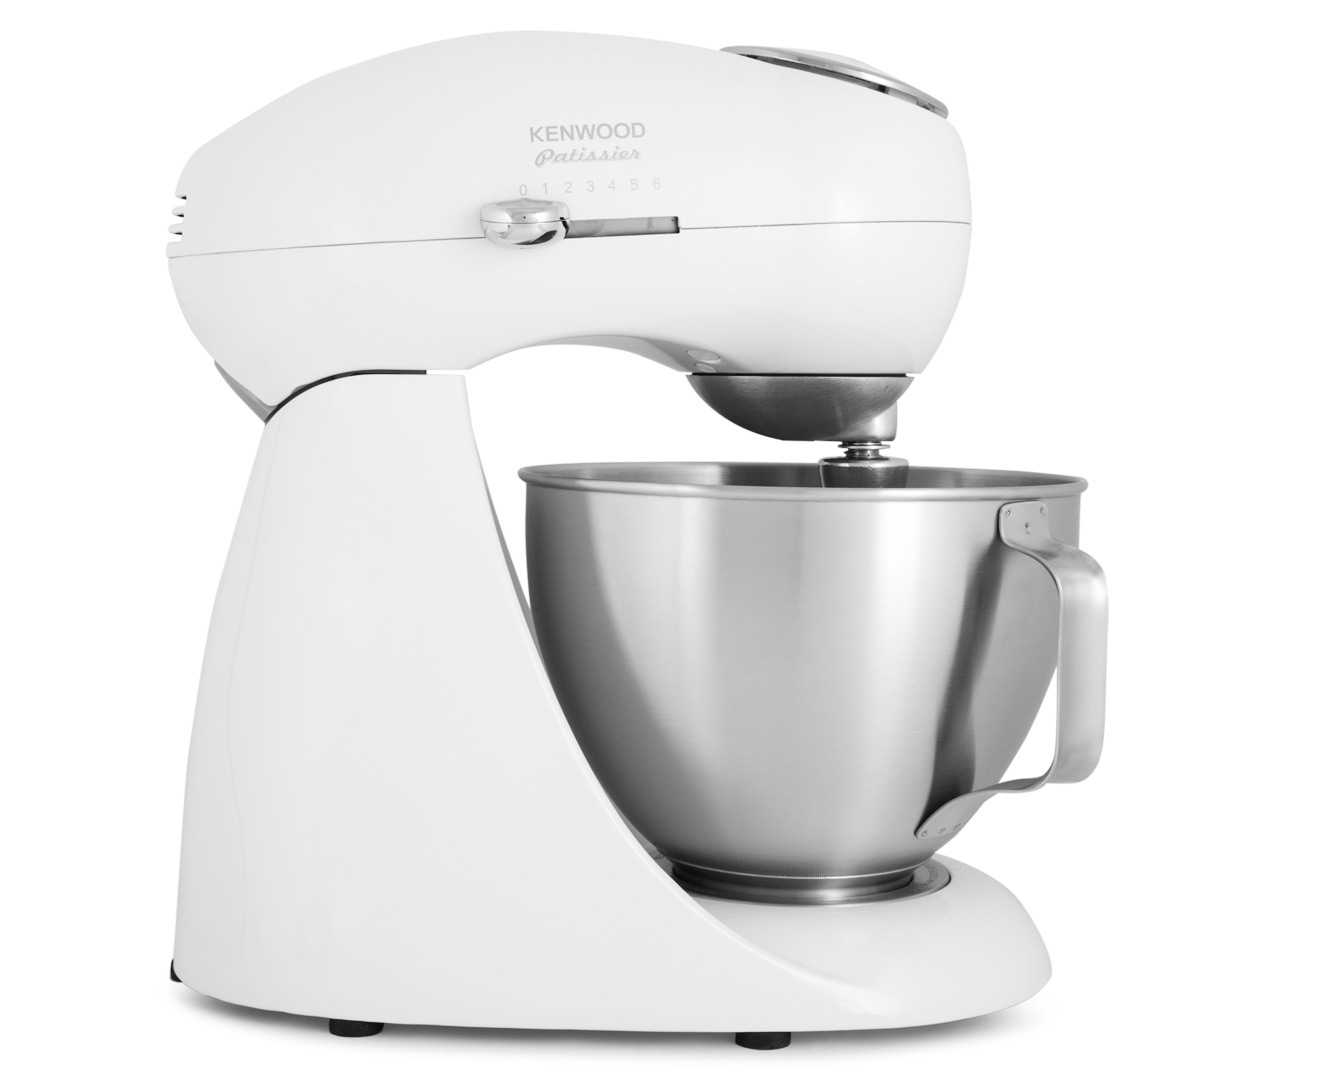 Bench Mixer Big W Kenwood Mx320 Patissier Stand Mixer White Scoopon Shopping